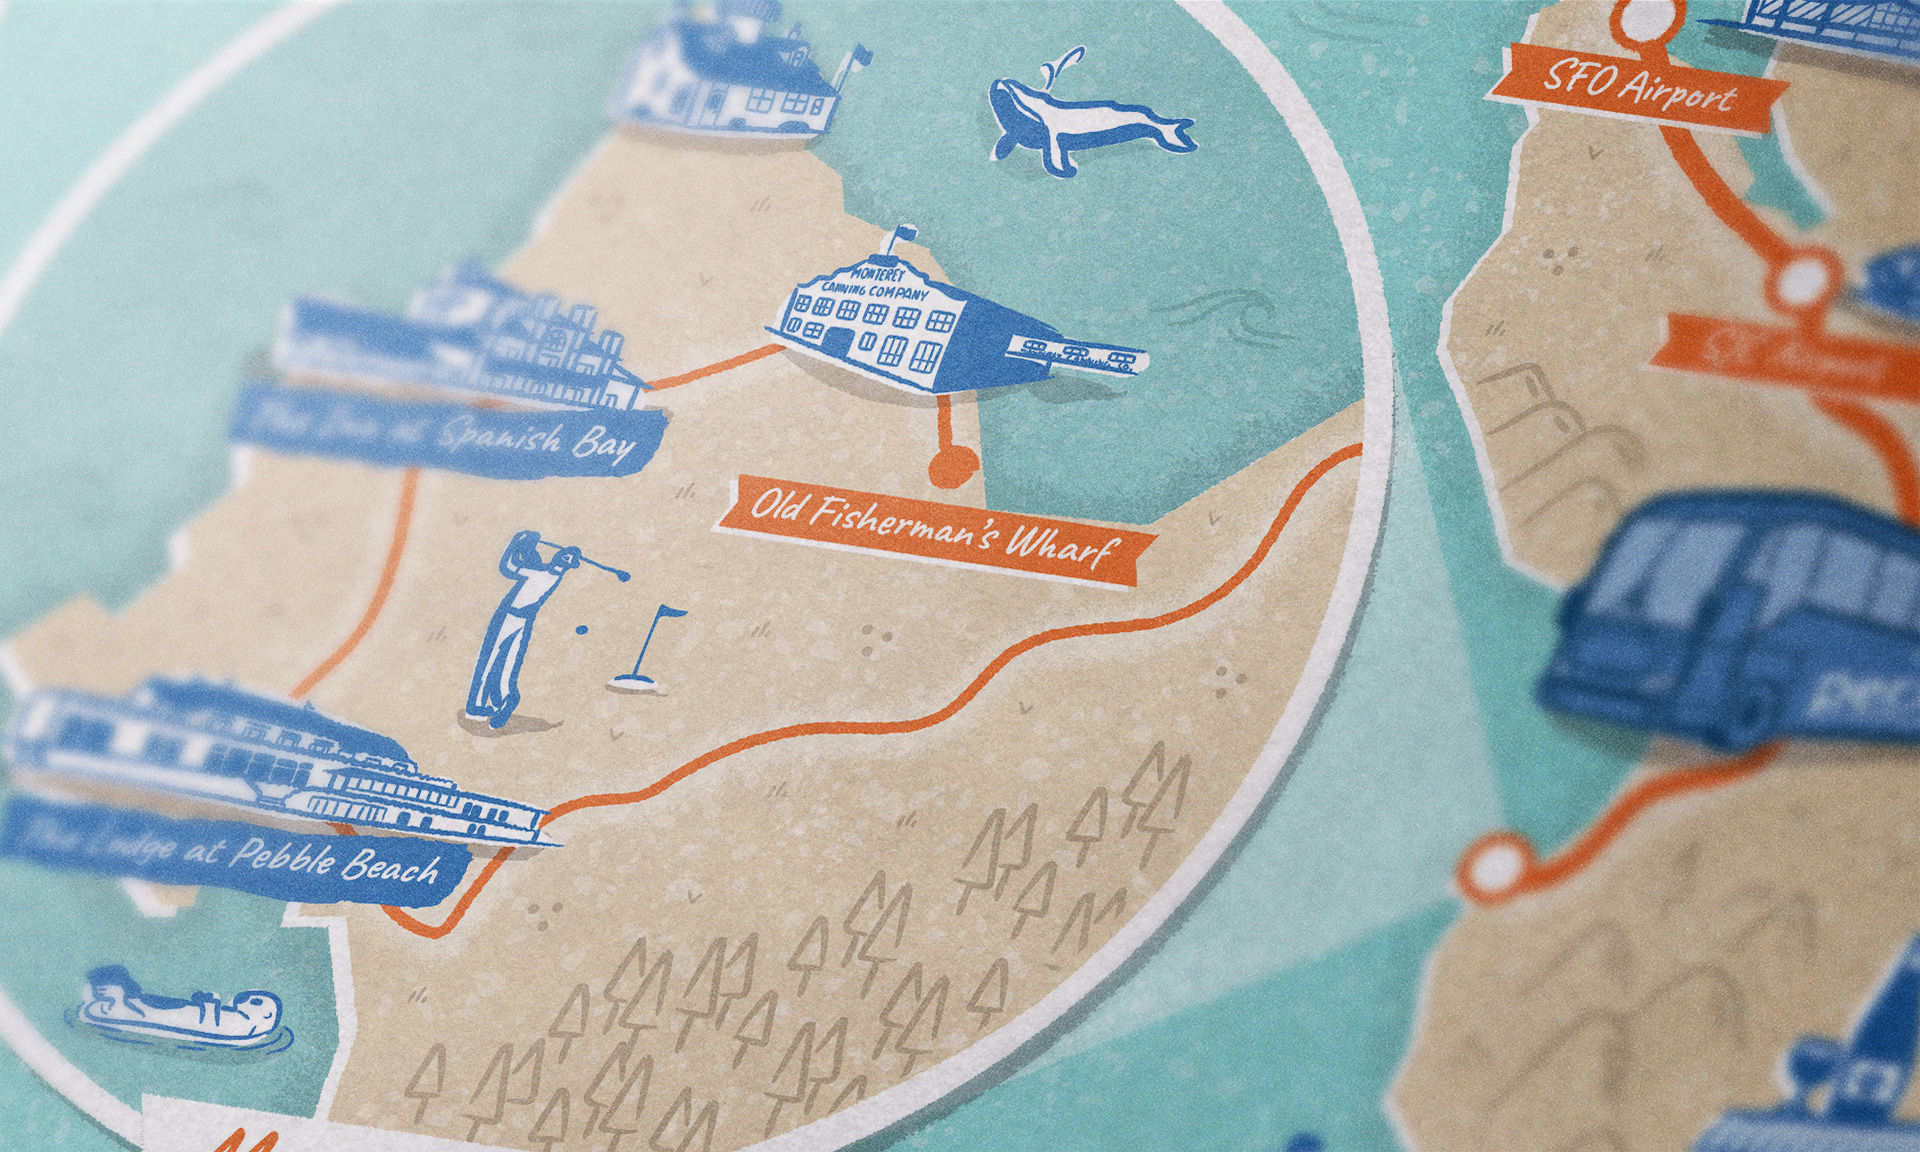 Monterey illustrated map close-up